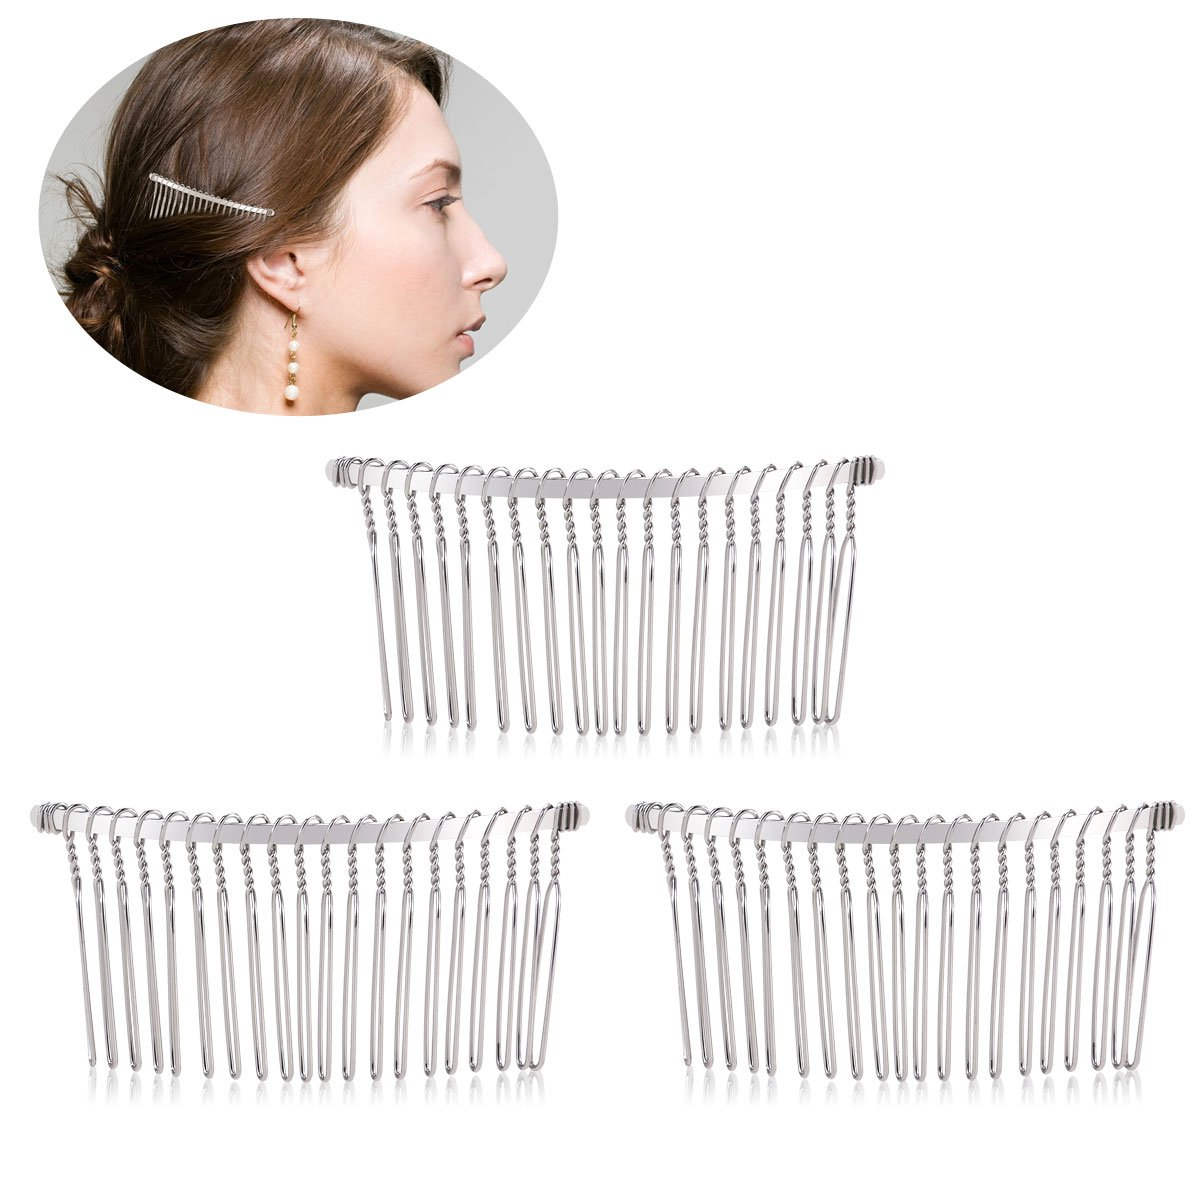 3 Pcs Twist Wire Silver Hair Combs Wedding Bridal Veil Accessory Crafts 4 Inch